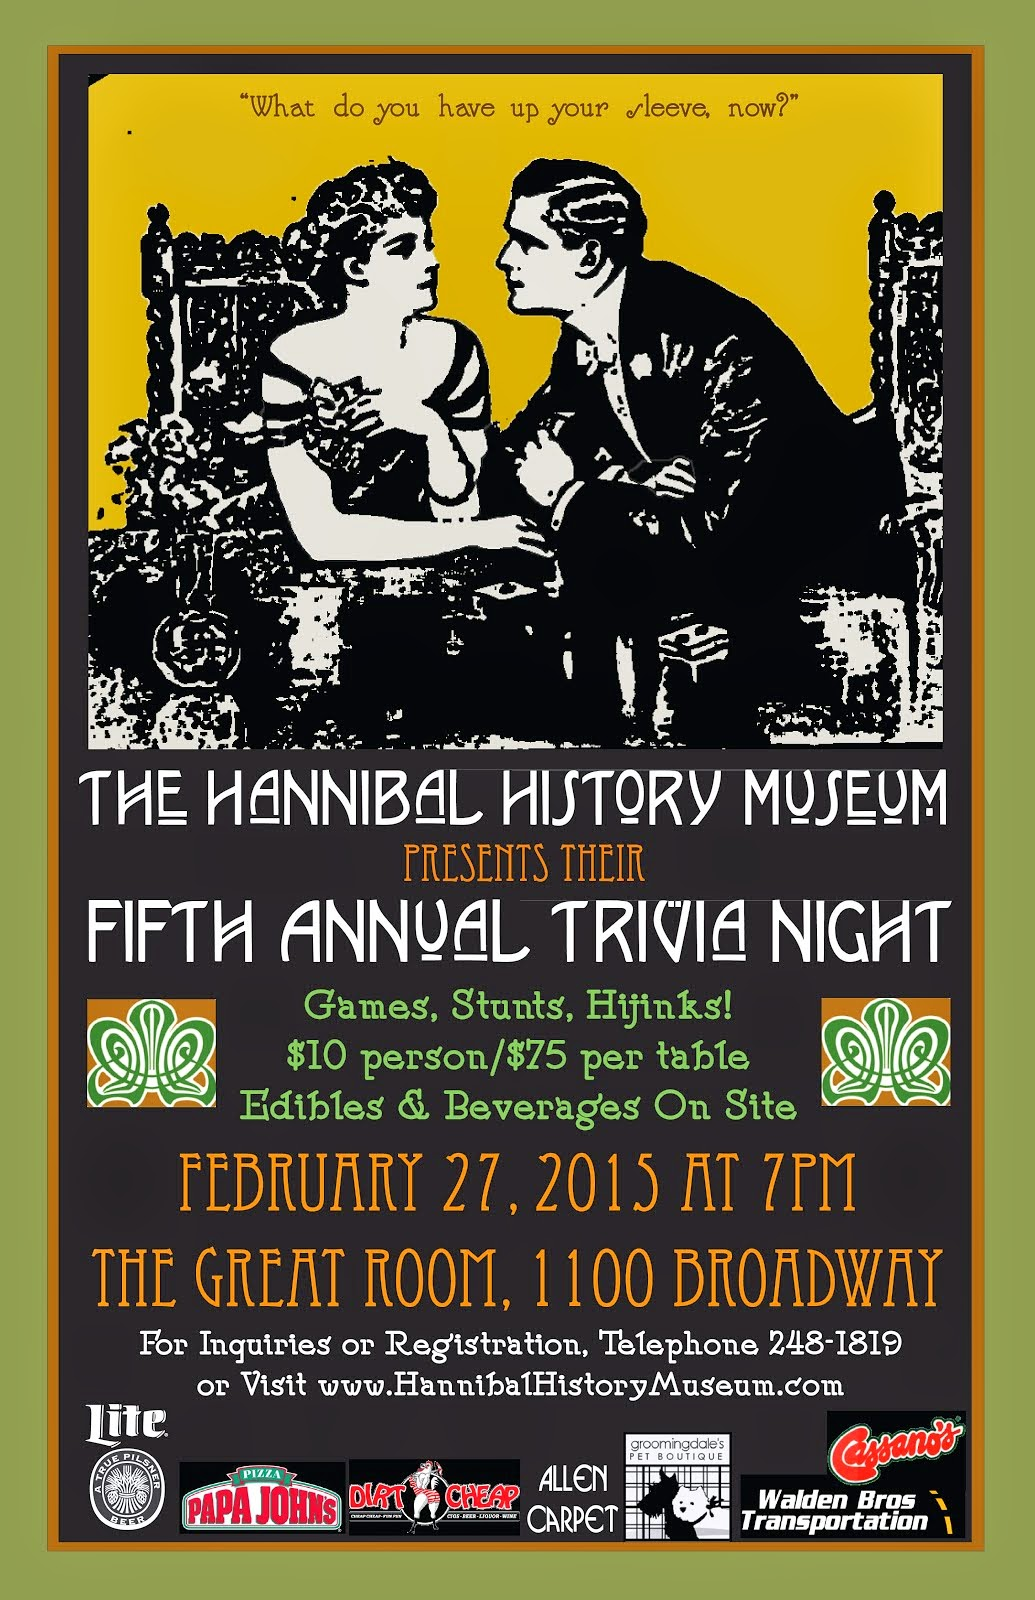 Hannibal History Museum's 5th Annual Trivia Night on Feb. 27th at The Great Room!